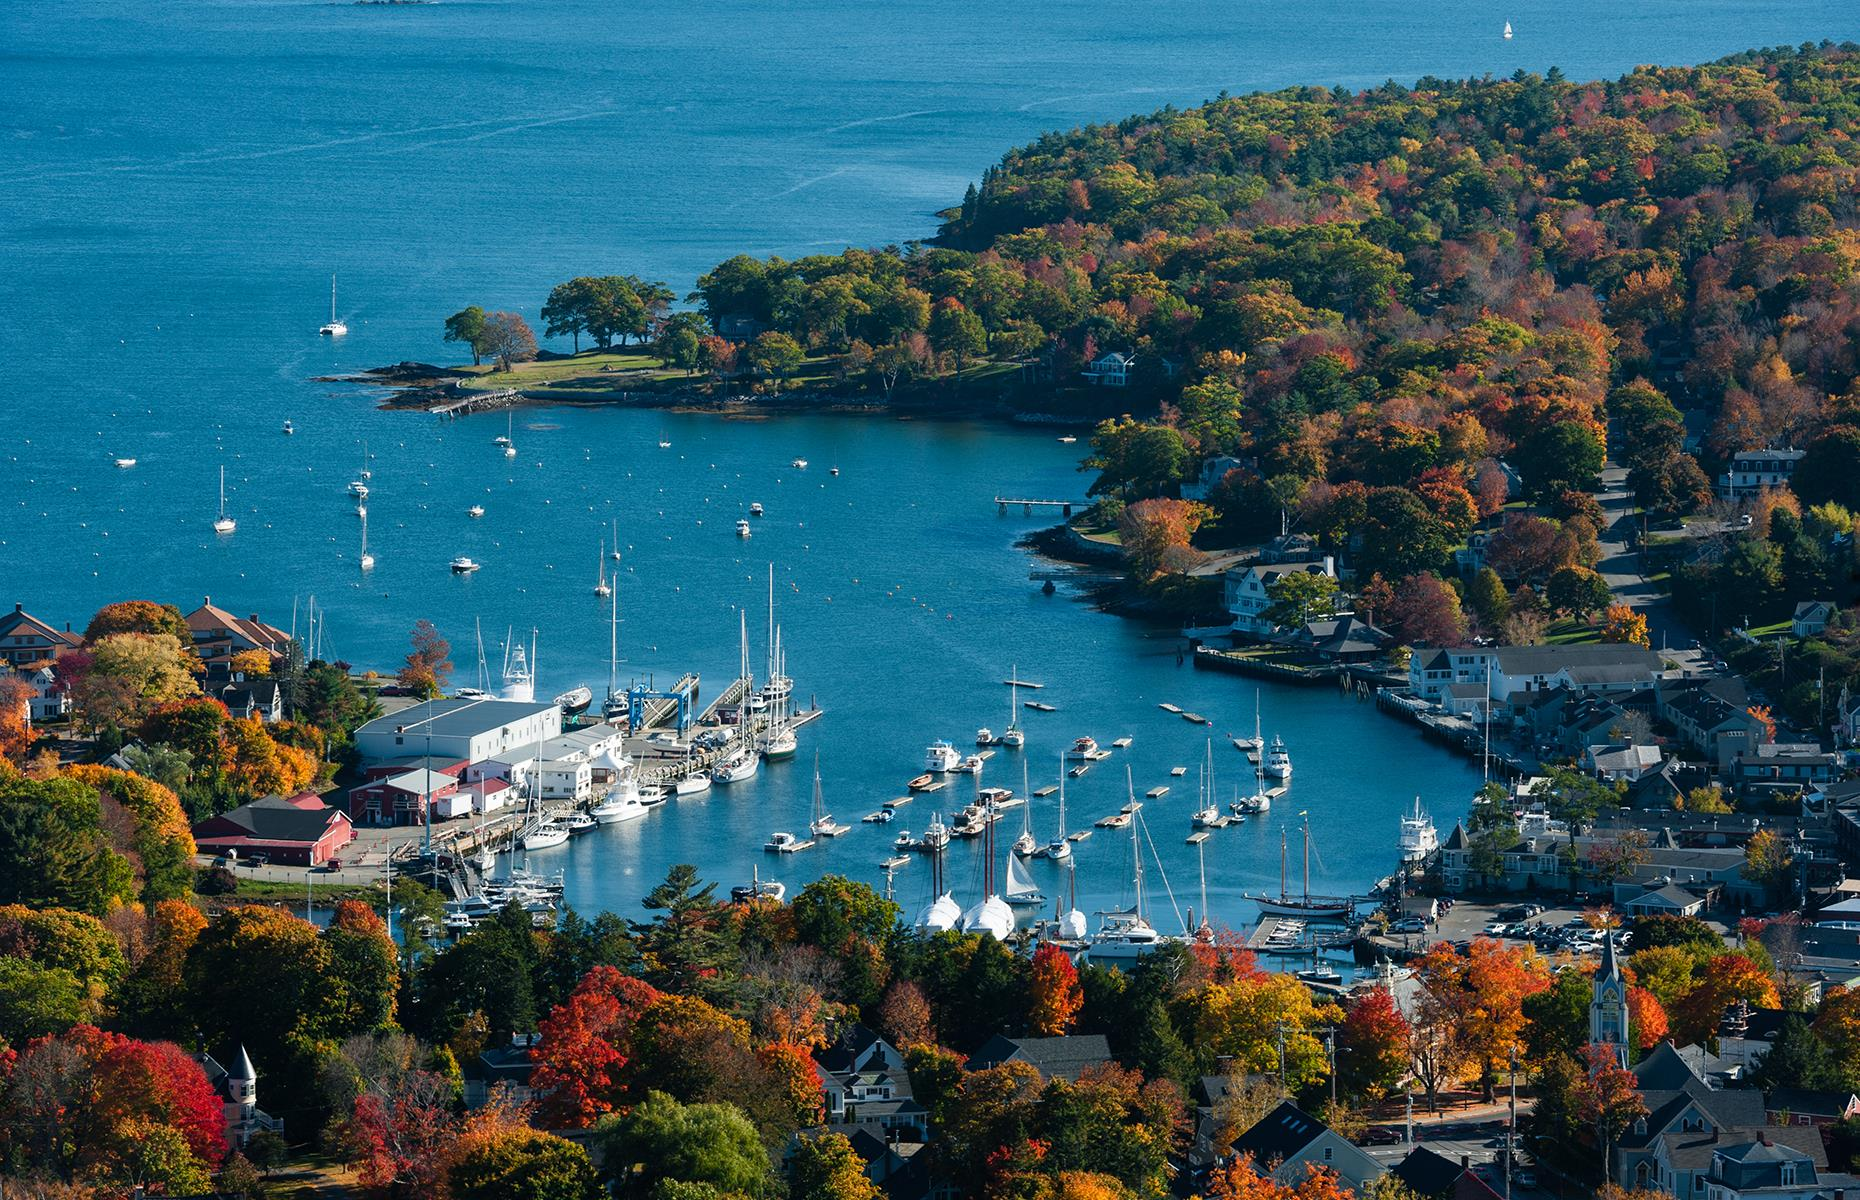 Slide 9 of 51: Nicknamed the Jewel of the Maine coast, Camden is a quintessential seaside town with a charming harbor, an old lighthouse, jagged rock bays and sunset cruises. The nearby Mount Battie showcases gorgeous views over the town, the bay and the surrounding forests.